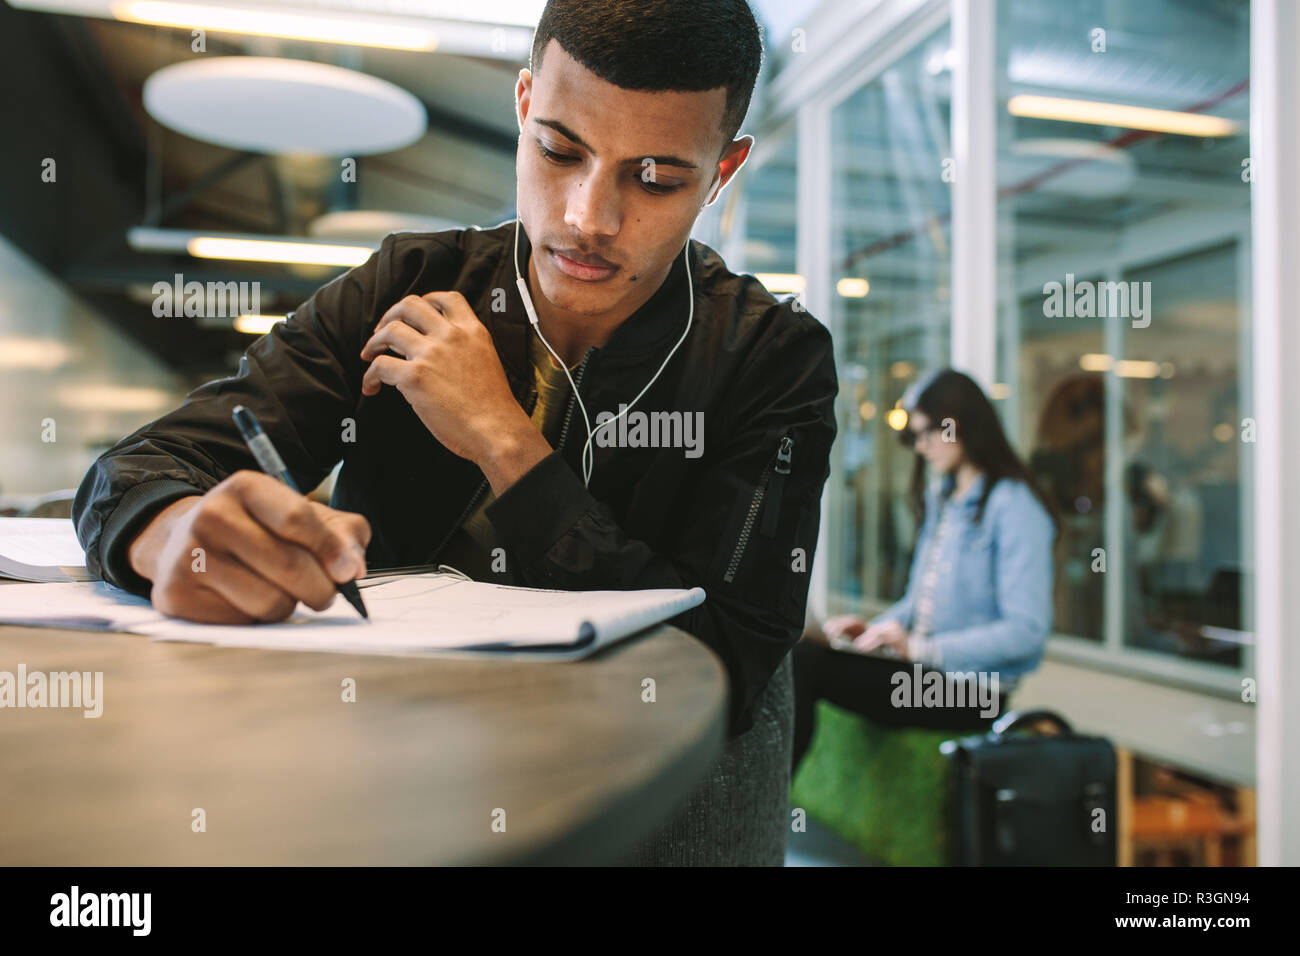 Young man making notes on book. Male student preparing for exams at university library. - Stock Image